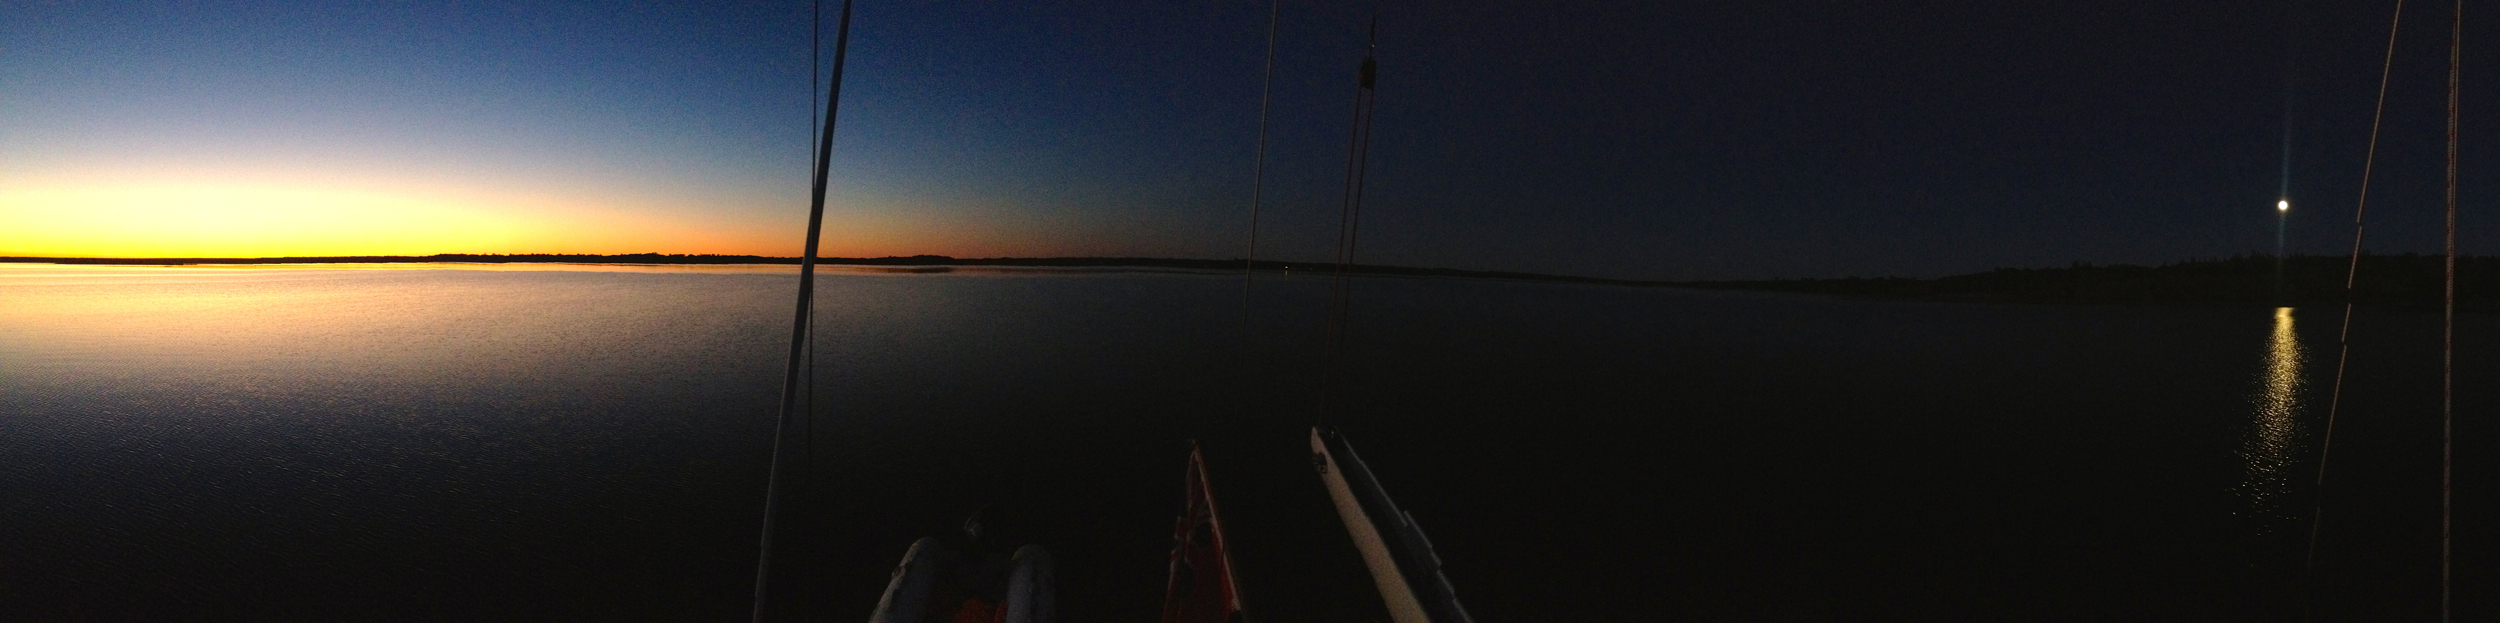 "Simultaneous panorama picture of sunset and moonrise (a bit over 180° field of view), from  Peregrinus  aft deck; the slanting lines are the boat's backstays.  8:17 PM, 8 September 2014, Mouth of the Salmon river, Grand Lake.  iPhone 4S, ISO 640, 1/120"", original 9365 pixels wide."